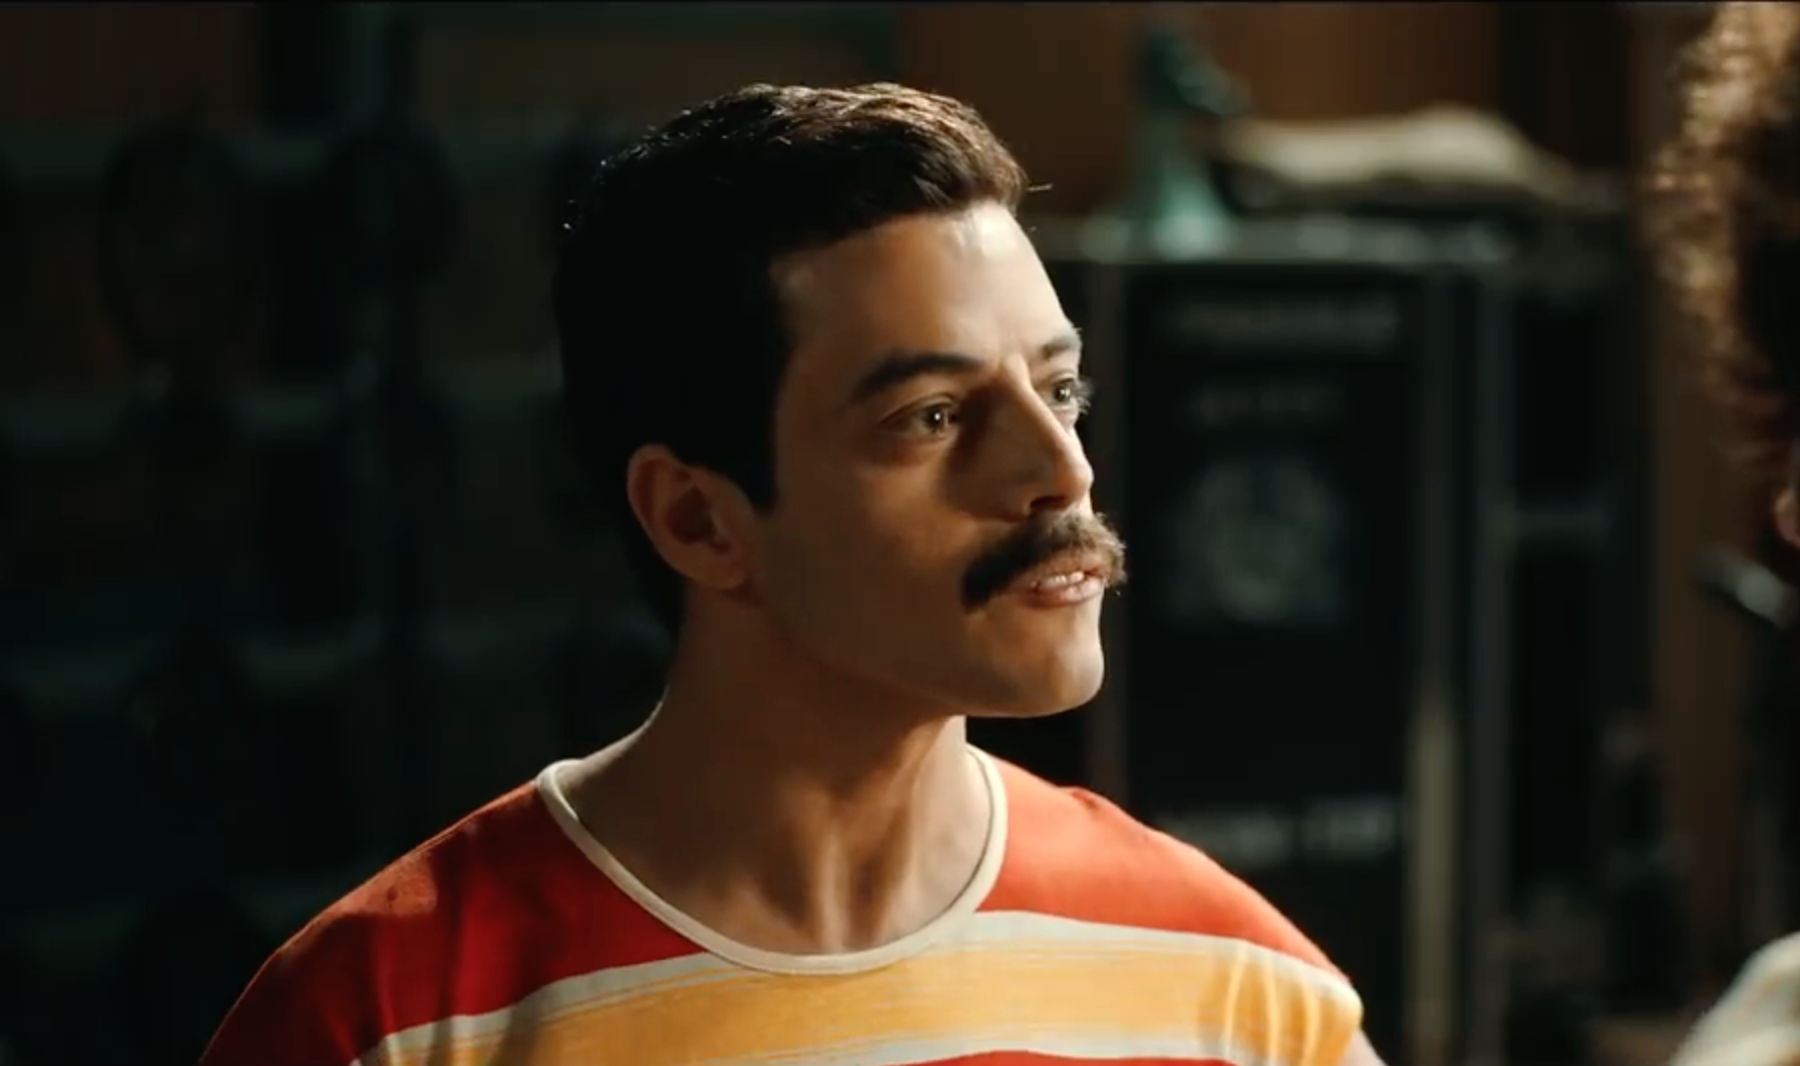 Bohemian Rhapsody Called Out for Factual Inaccuracies